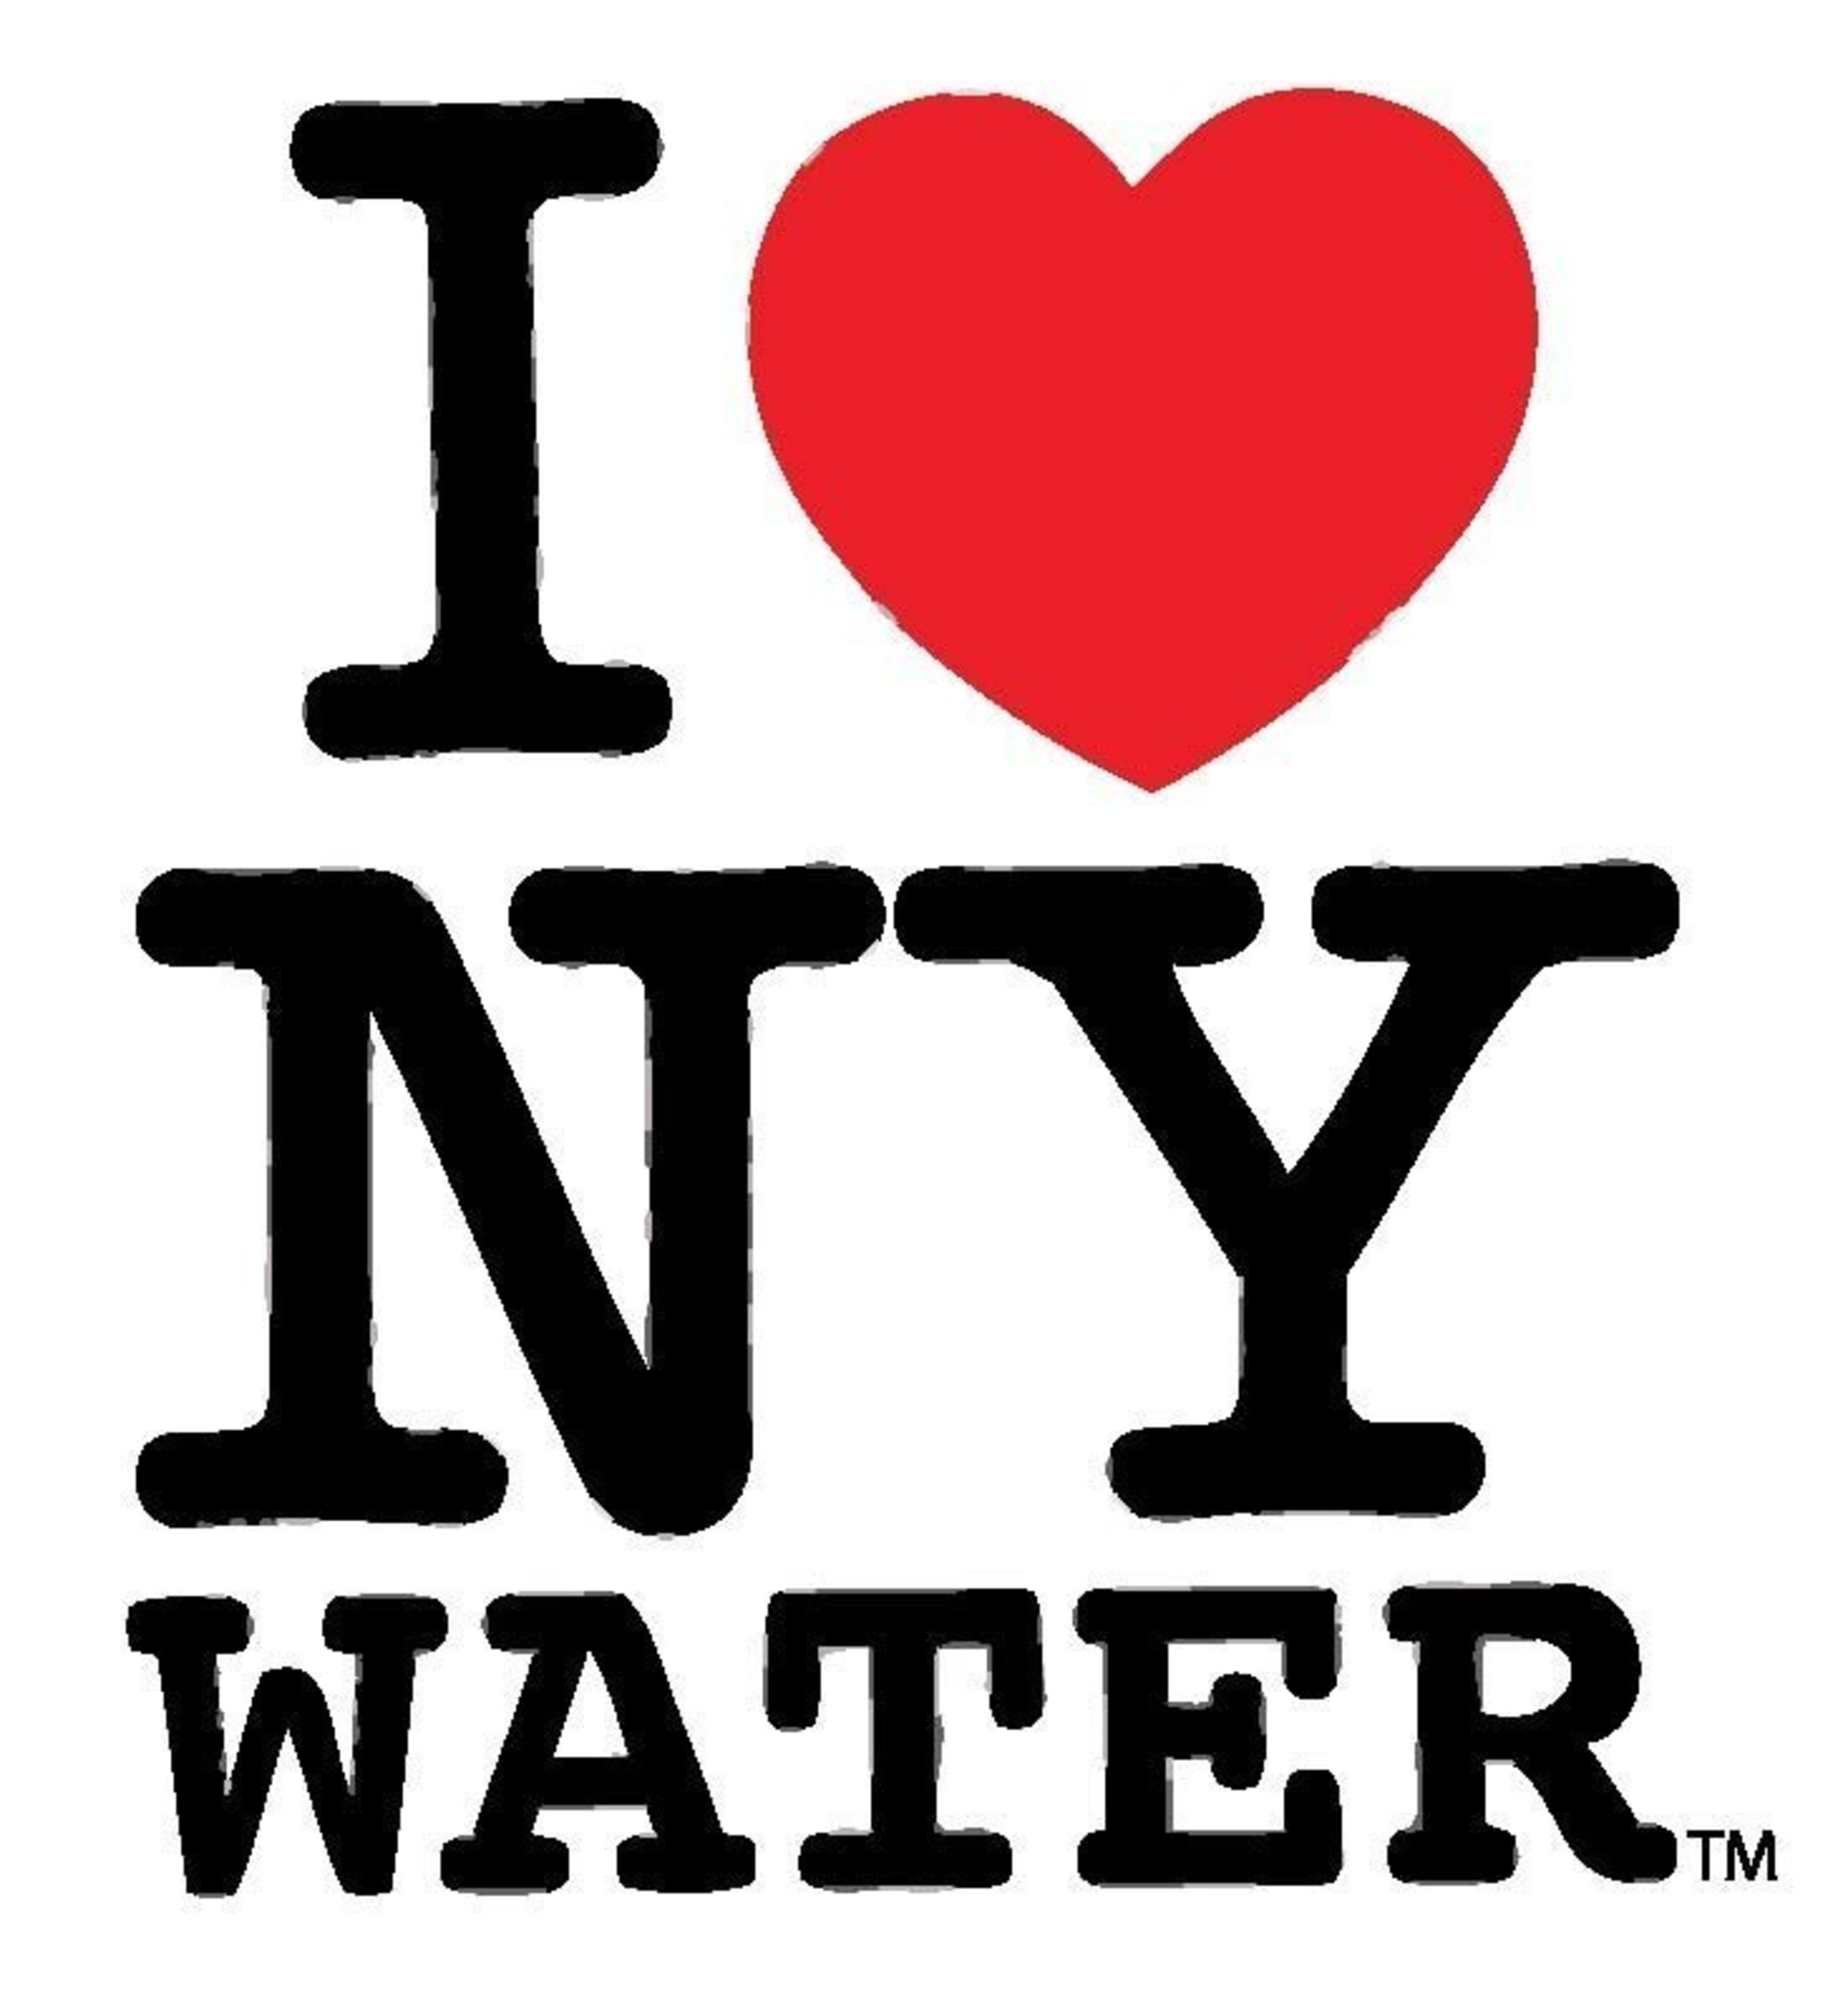 New i love ny water promotion urges free refills over costly landfills i love ny waters mission is to encourage people to choose new yorks tap water using altavistaventures Image collections